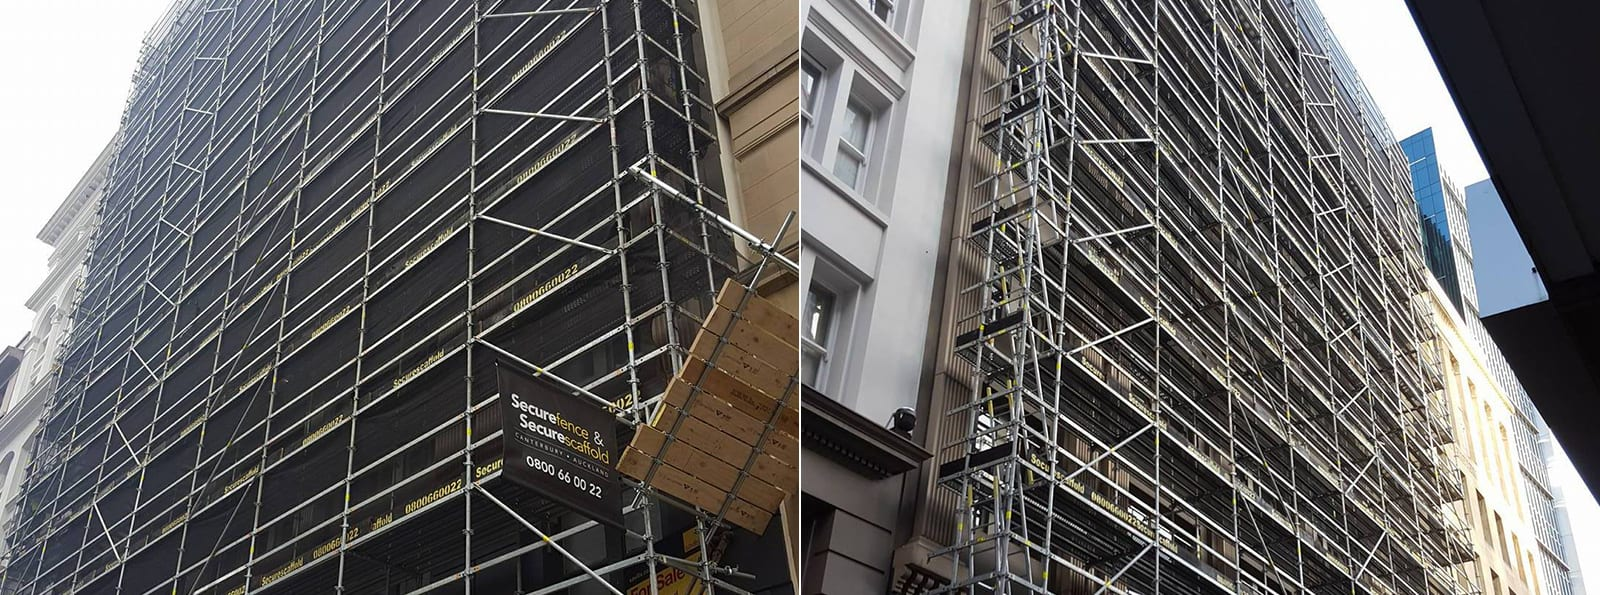 Secure_Scaffold06